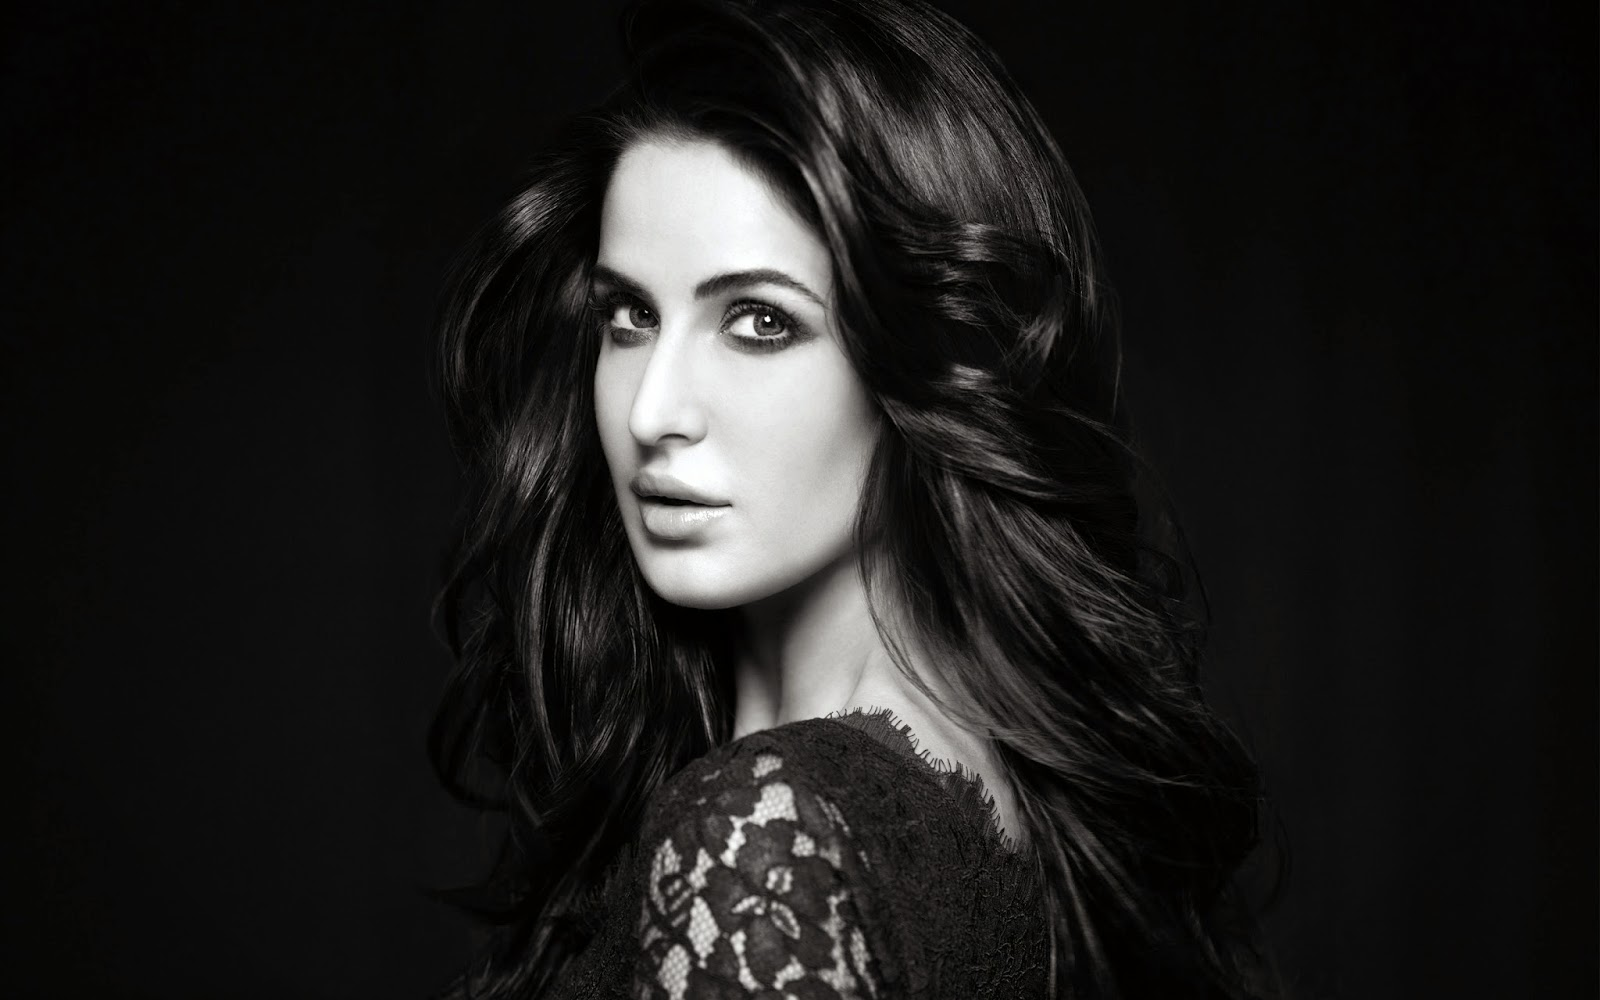 The Most Beautiful Celebrities In The World - Moi Tres Jolie